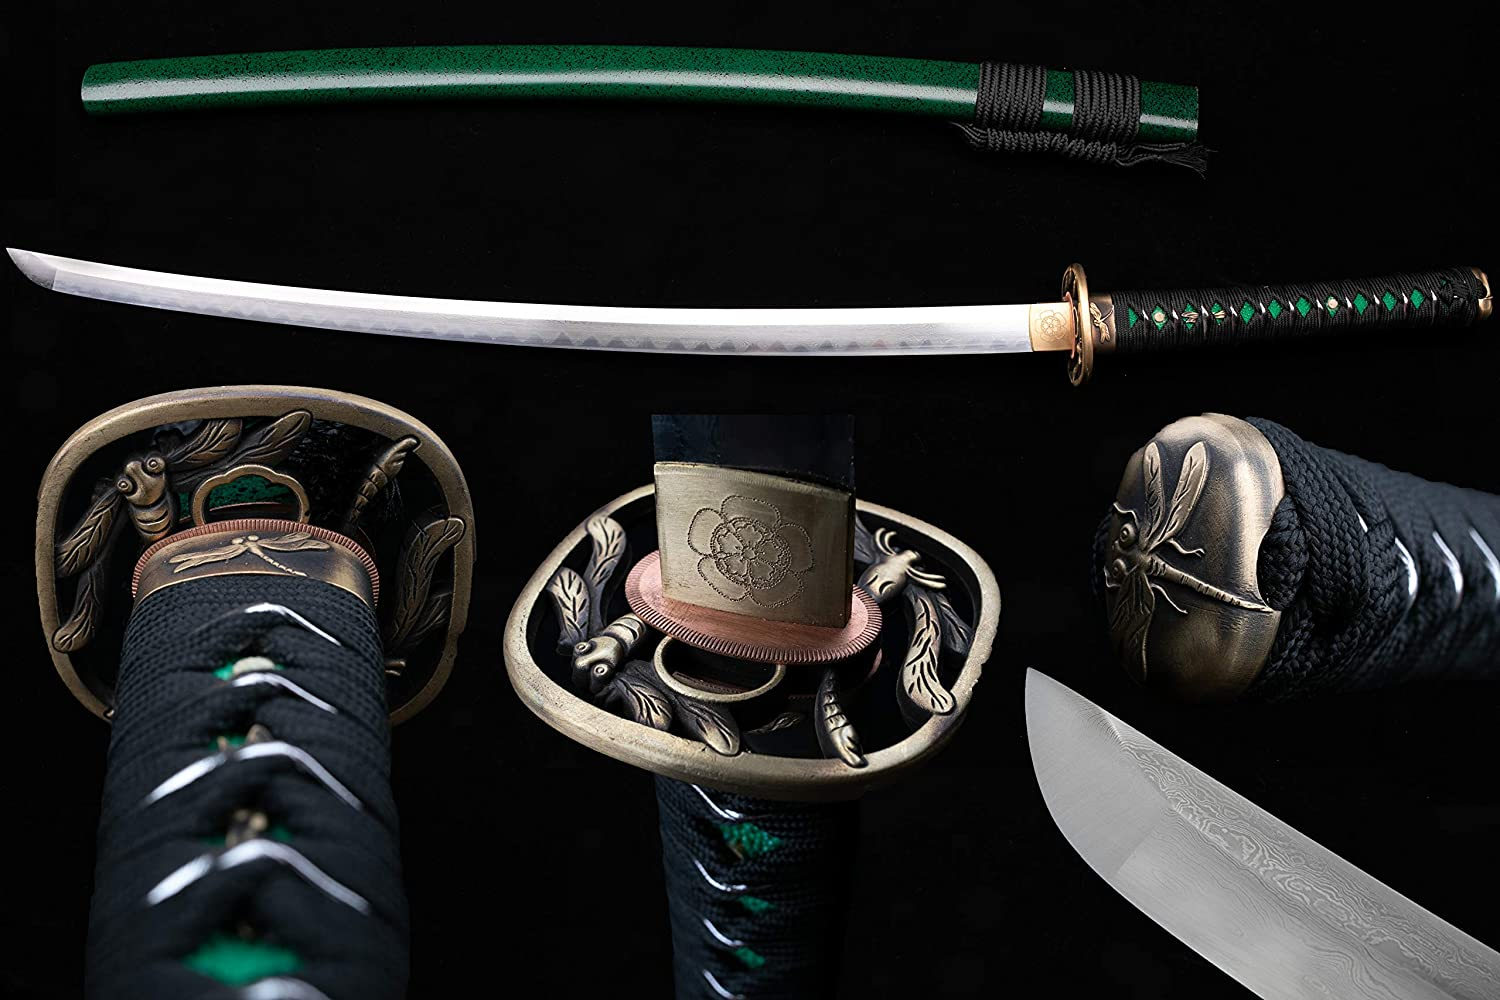 BOHIHYU Handforged Ninja Samurai Katana, Damascus steel/1095(T10) High Carbon Steel, Full Tang Blade, Sharp Knife, Real Battle Swords, Antique Copper Tsuba, Solid Wood Saya